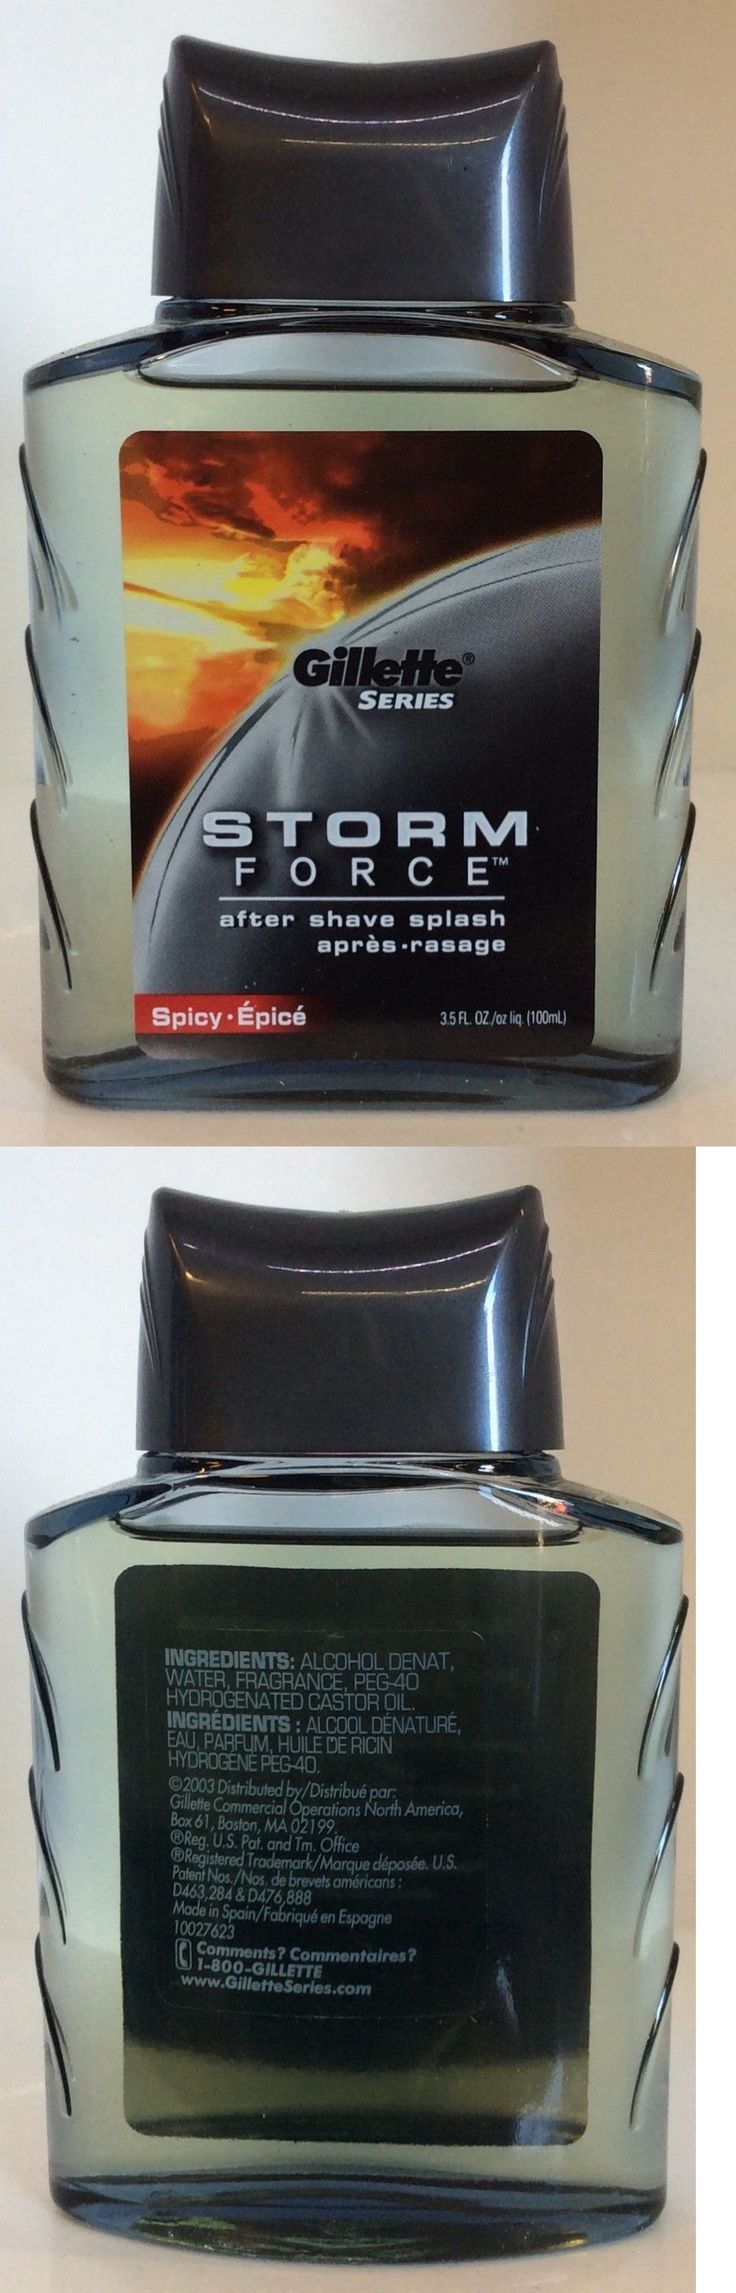 Aftershave and Pre-Shave: Gillette Series Storm Force After Shave Splash 3.5 Fl Oz, Spicy Epice -> BUY IT NOW ONLY: $50 on eBay!